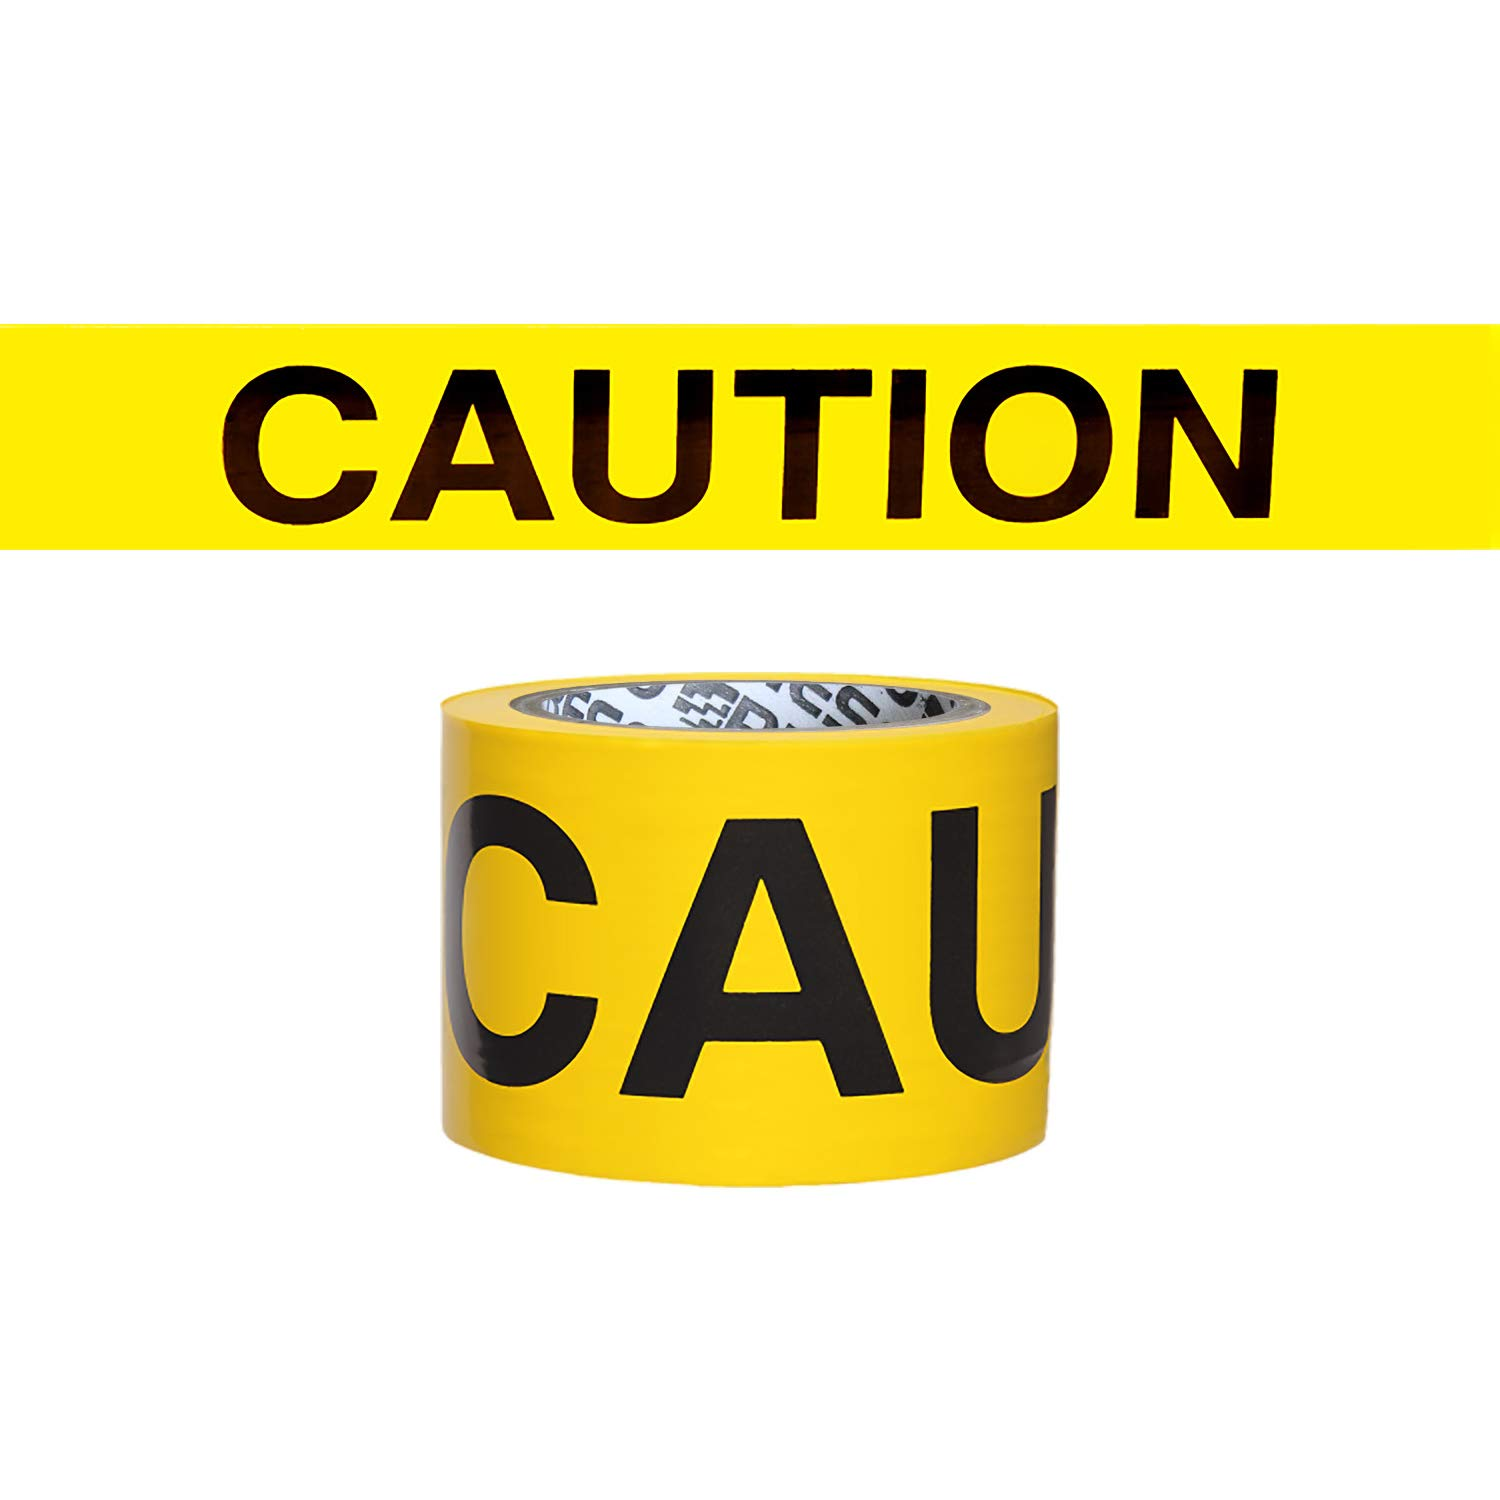 Presco Economy Printed Barricade Tape: 3 in. x 300 ft. (Yellow with Black'Caution' Printing) BARRIER/LC3300